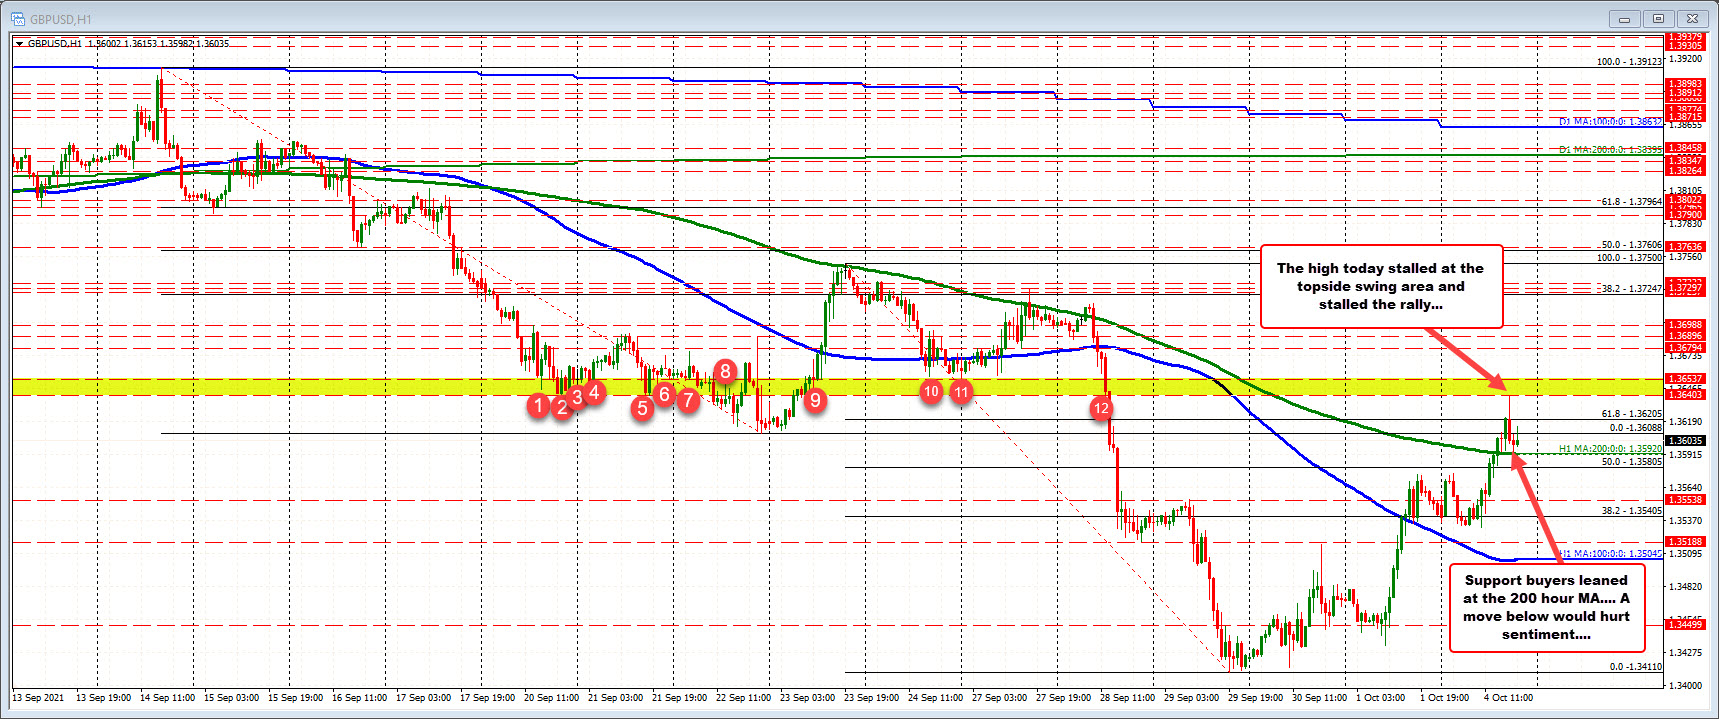 GBPUSD holds ground against its 200 hour MA on correction lower